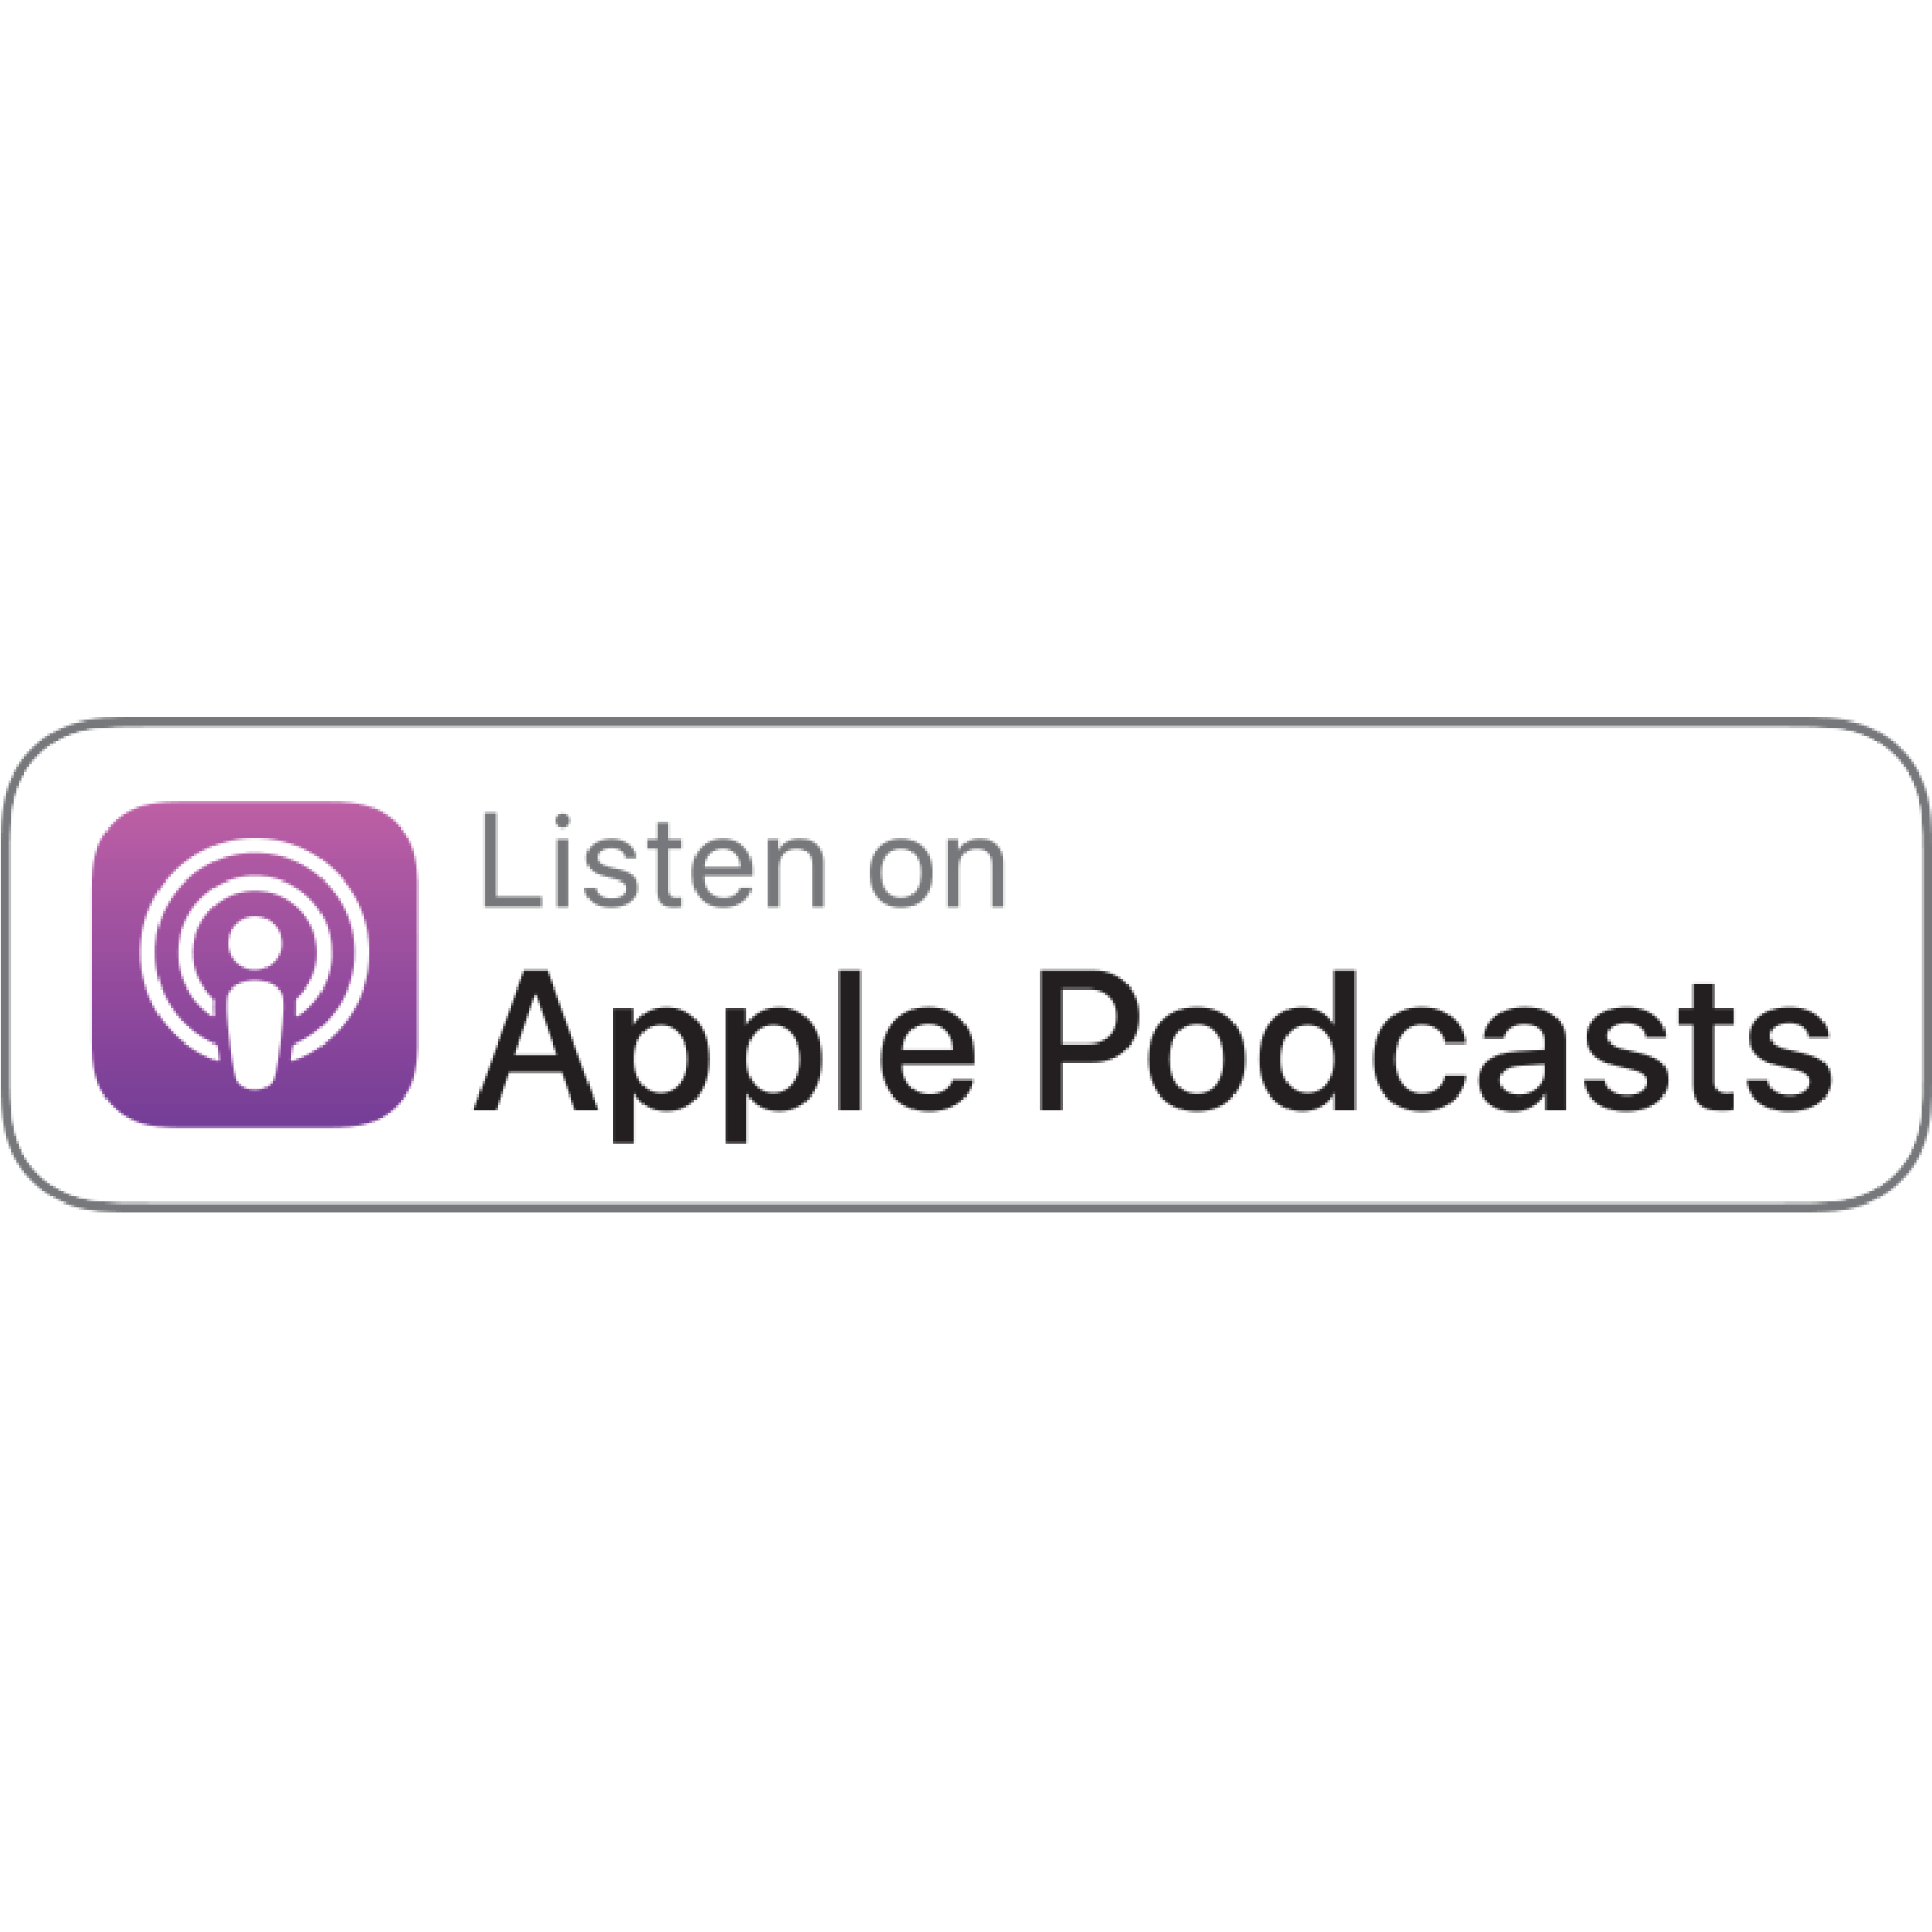 apple-podcast-01.png